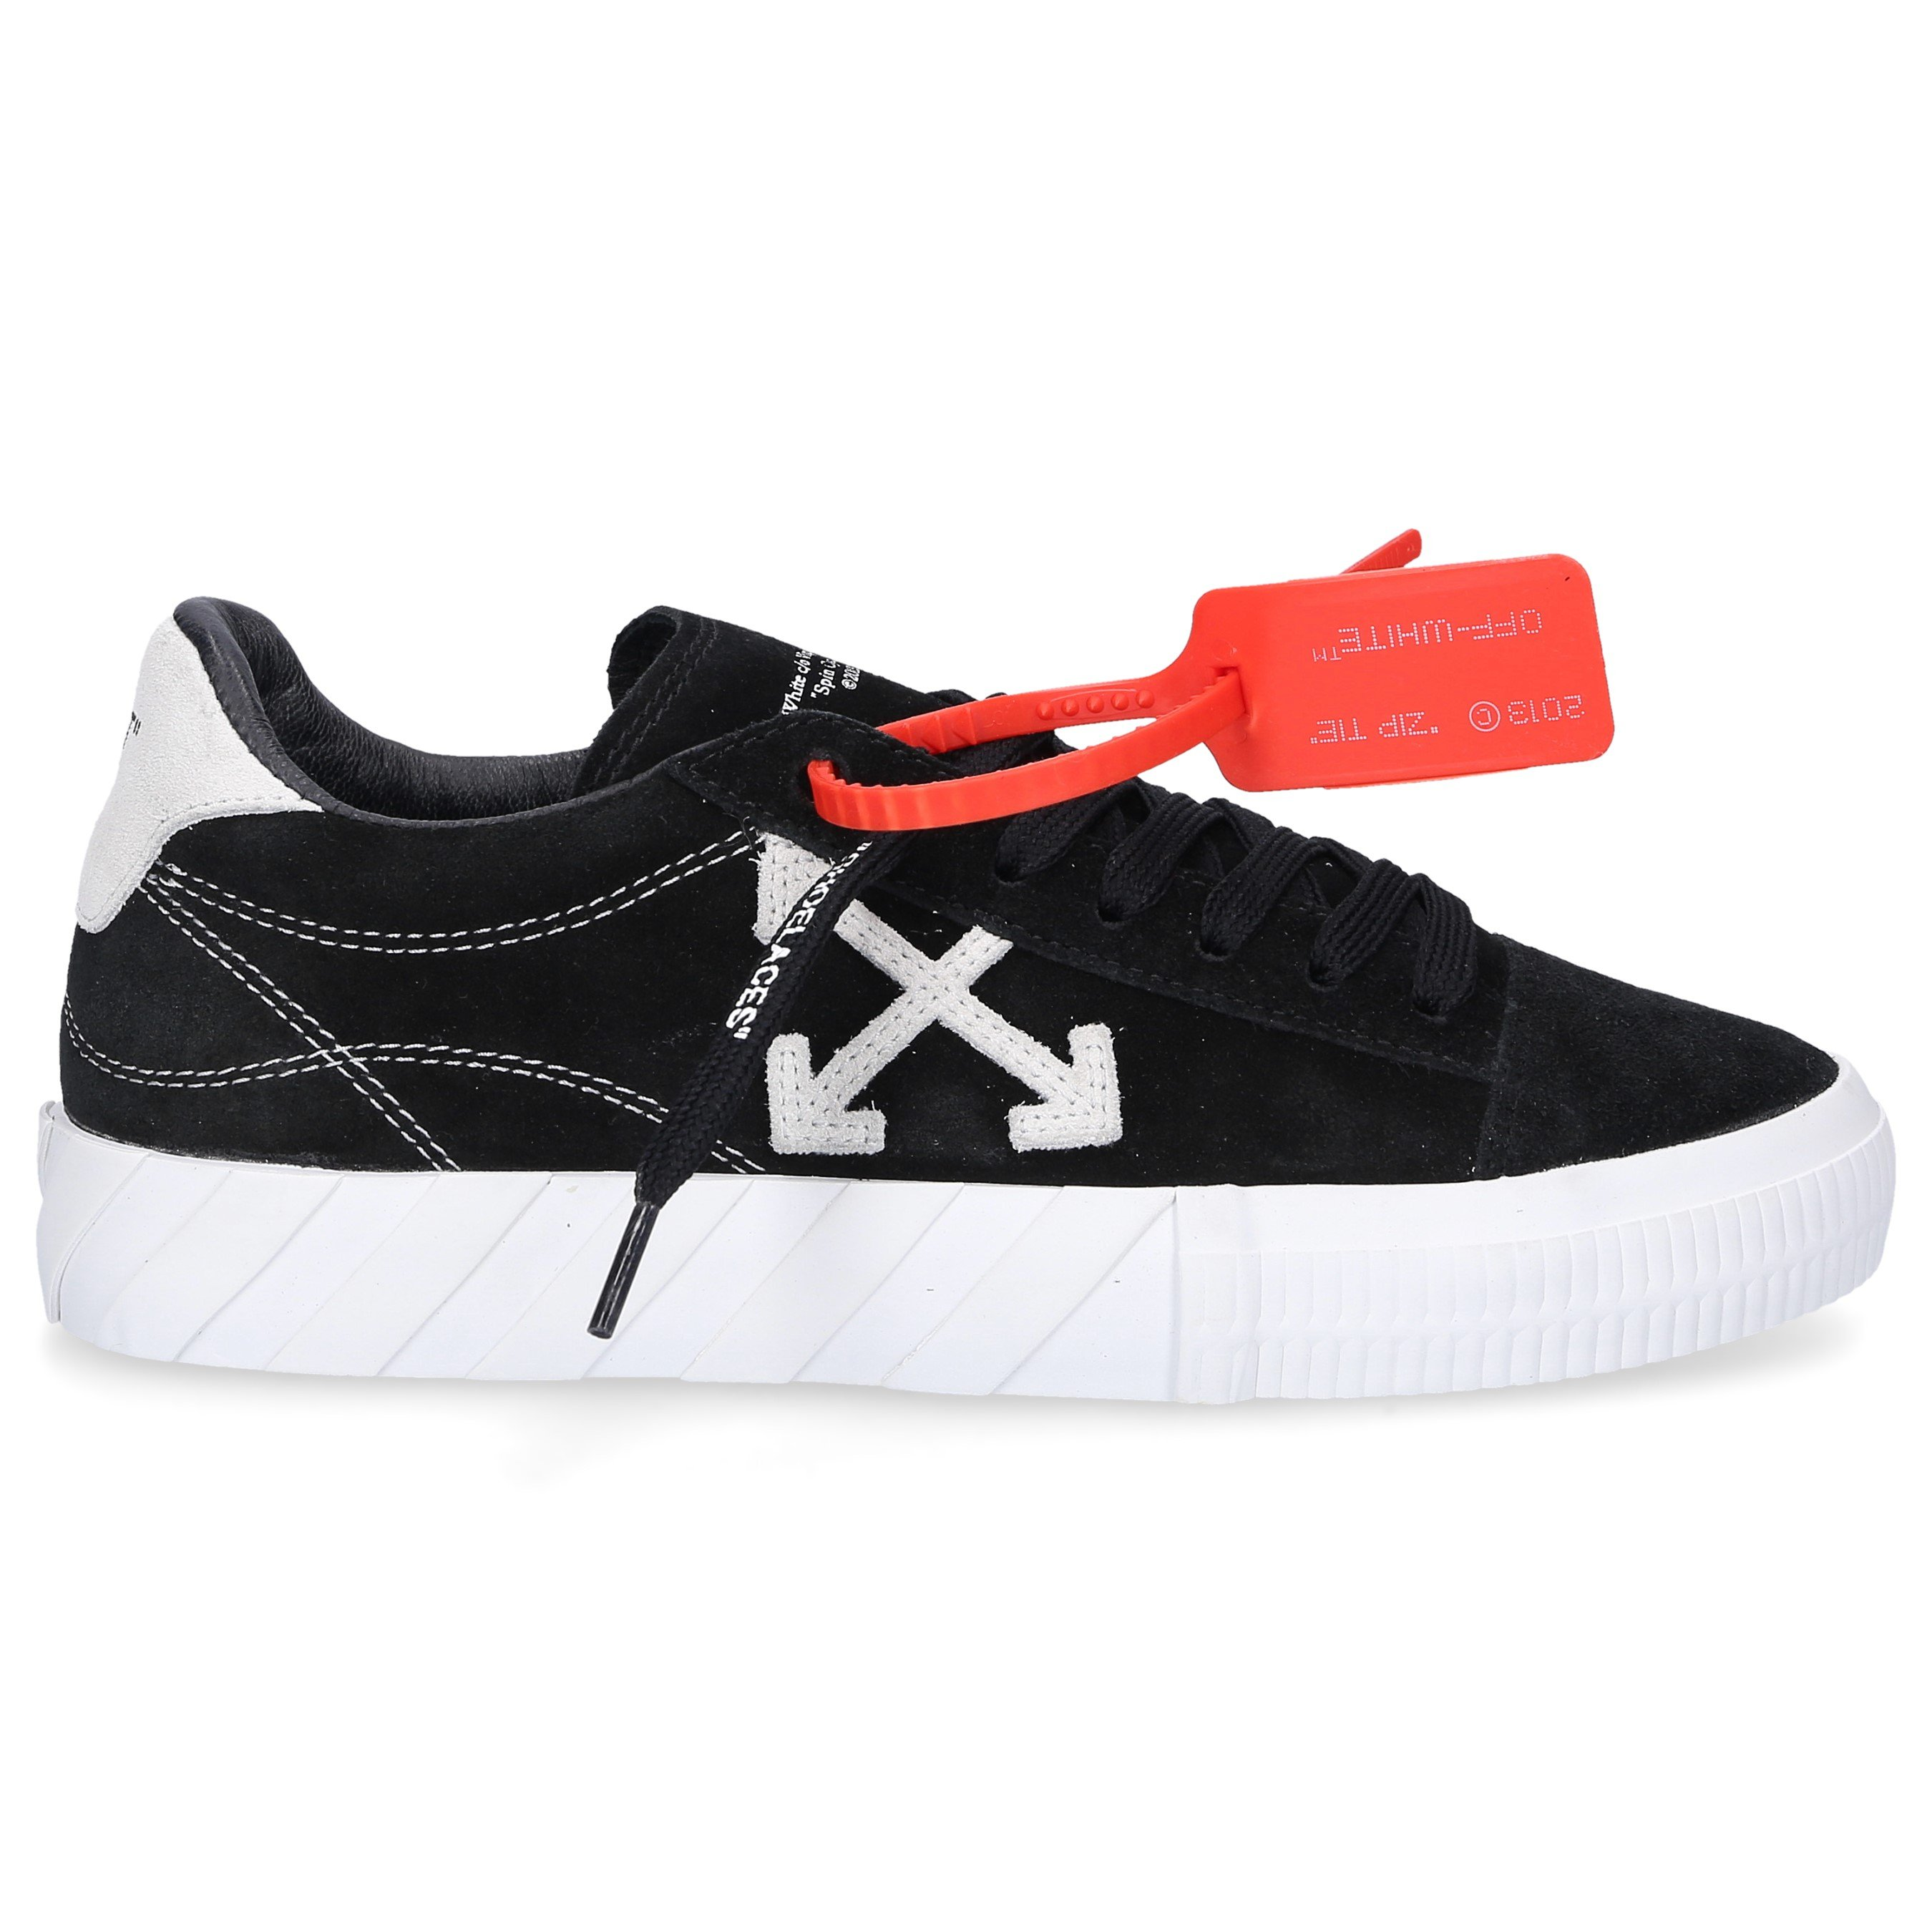 Off-White LOW-TOP SNEAKERS VULCANIZED SUEDE LOGO BLACK